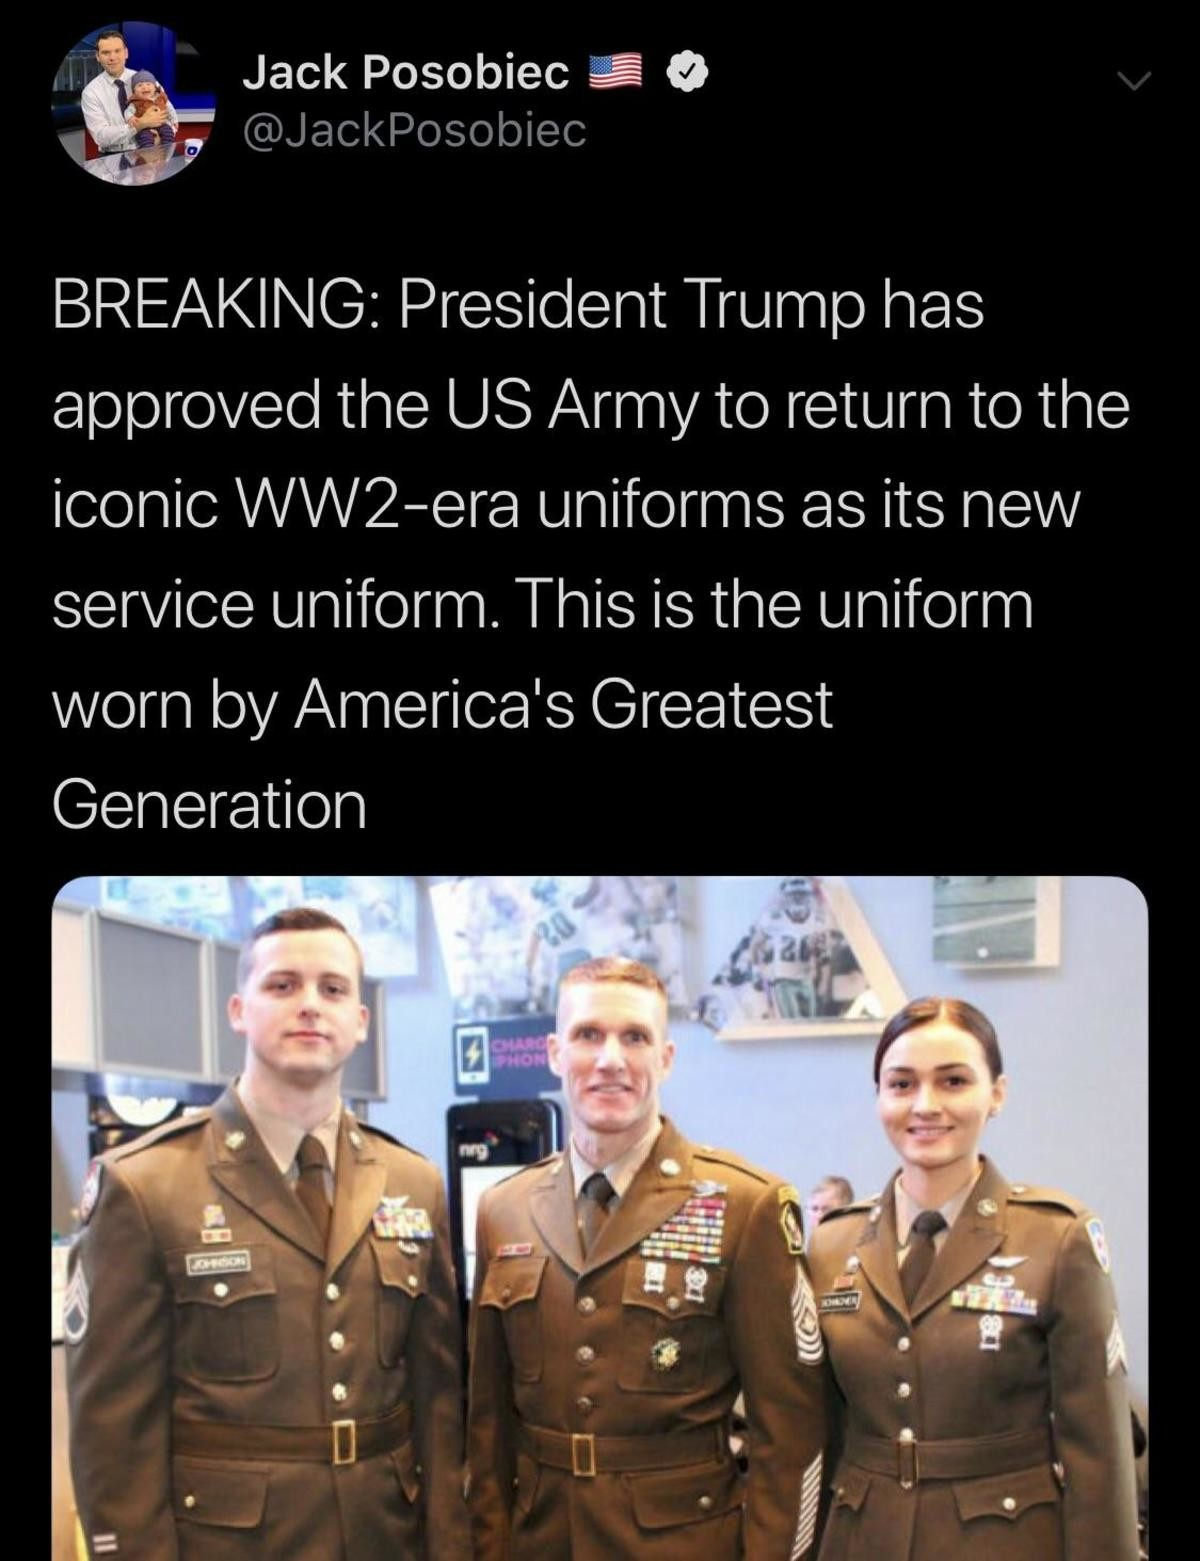 WWII Era Uniform. .. https://www.google.com/amp/s/www.military.com/kitup/2018/11/19/soldiers-get-new-greens-uniform-2020-after-army-finalizes-design.html/amp looked through many art